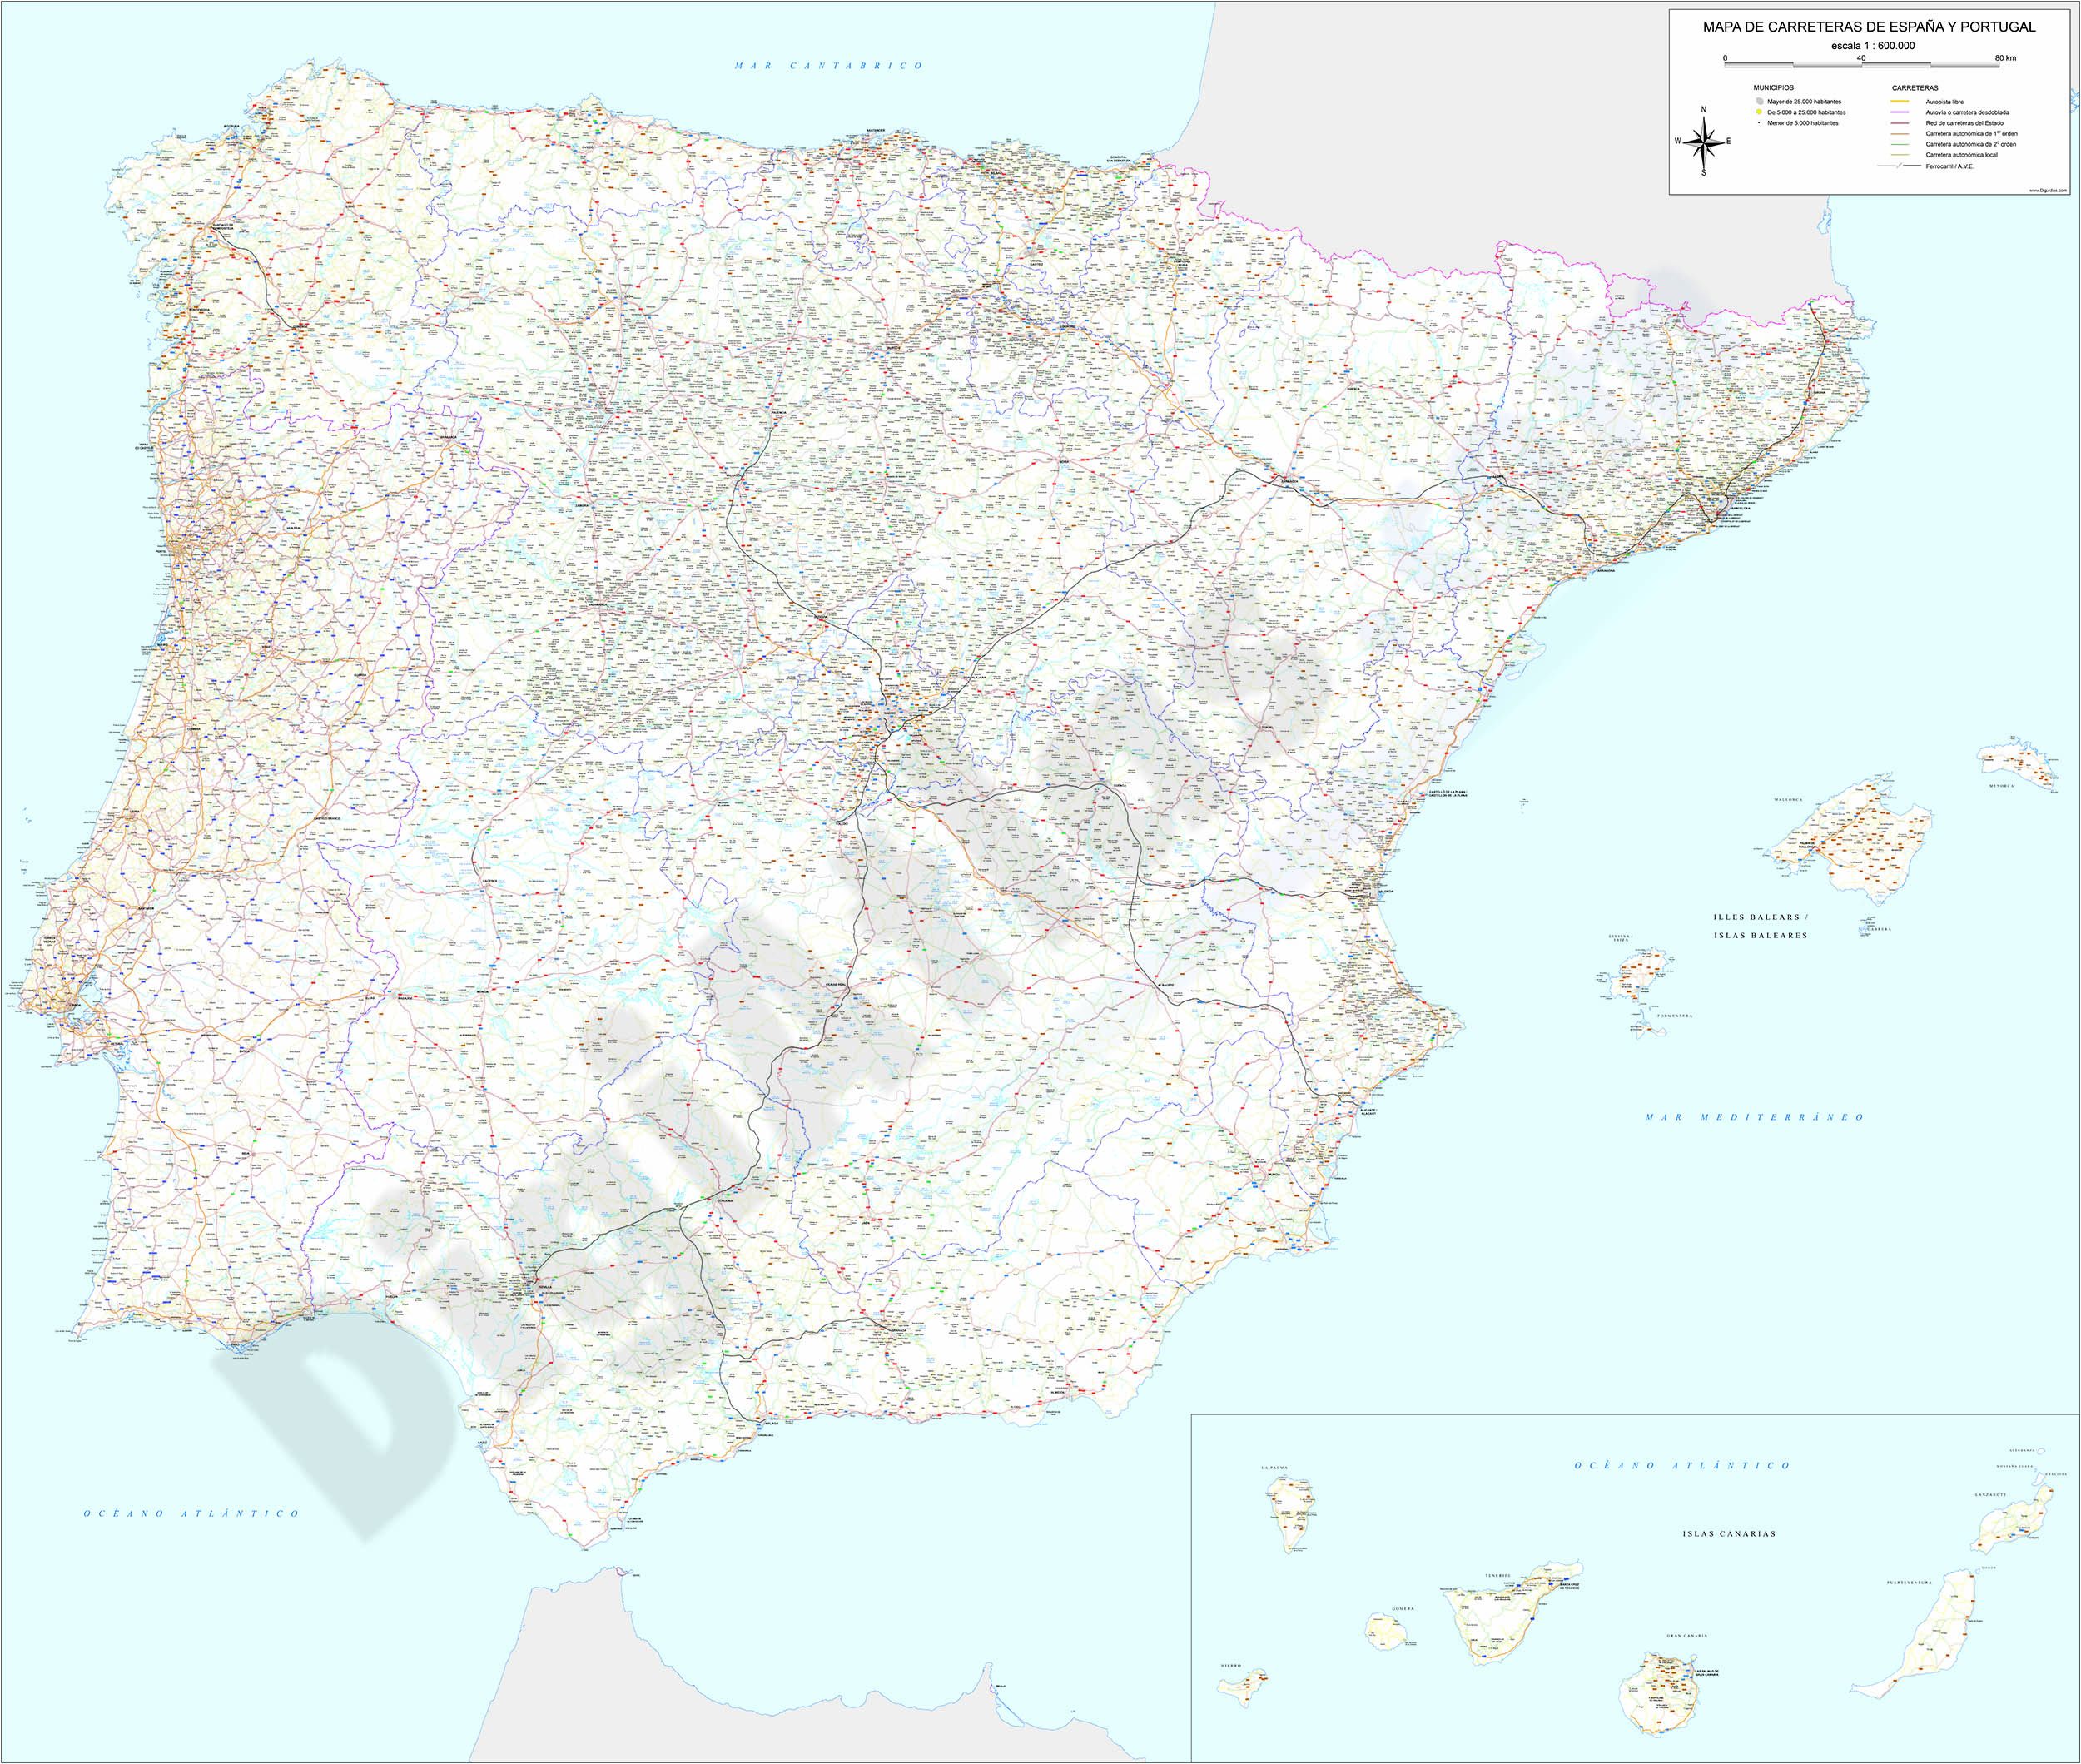 Road Map Of Portugal And Spain.Detailed Road Map Of Spain And Portugal